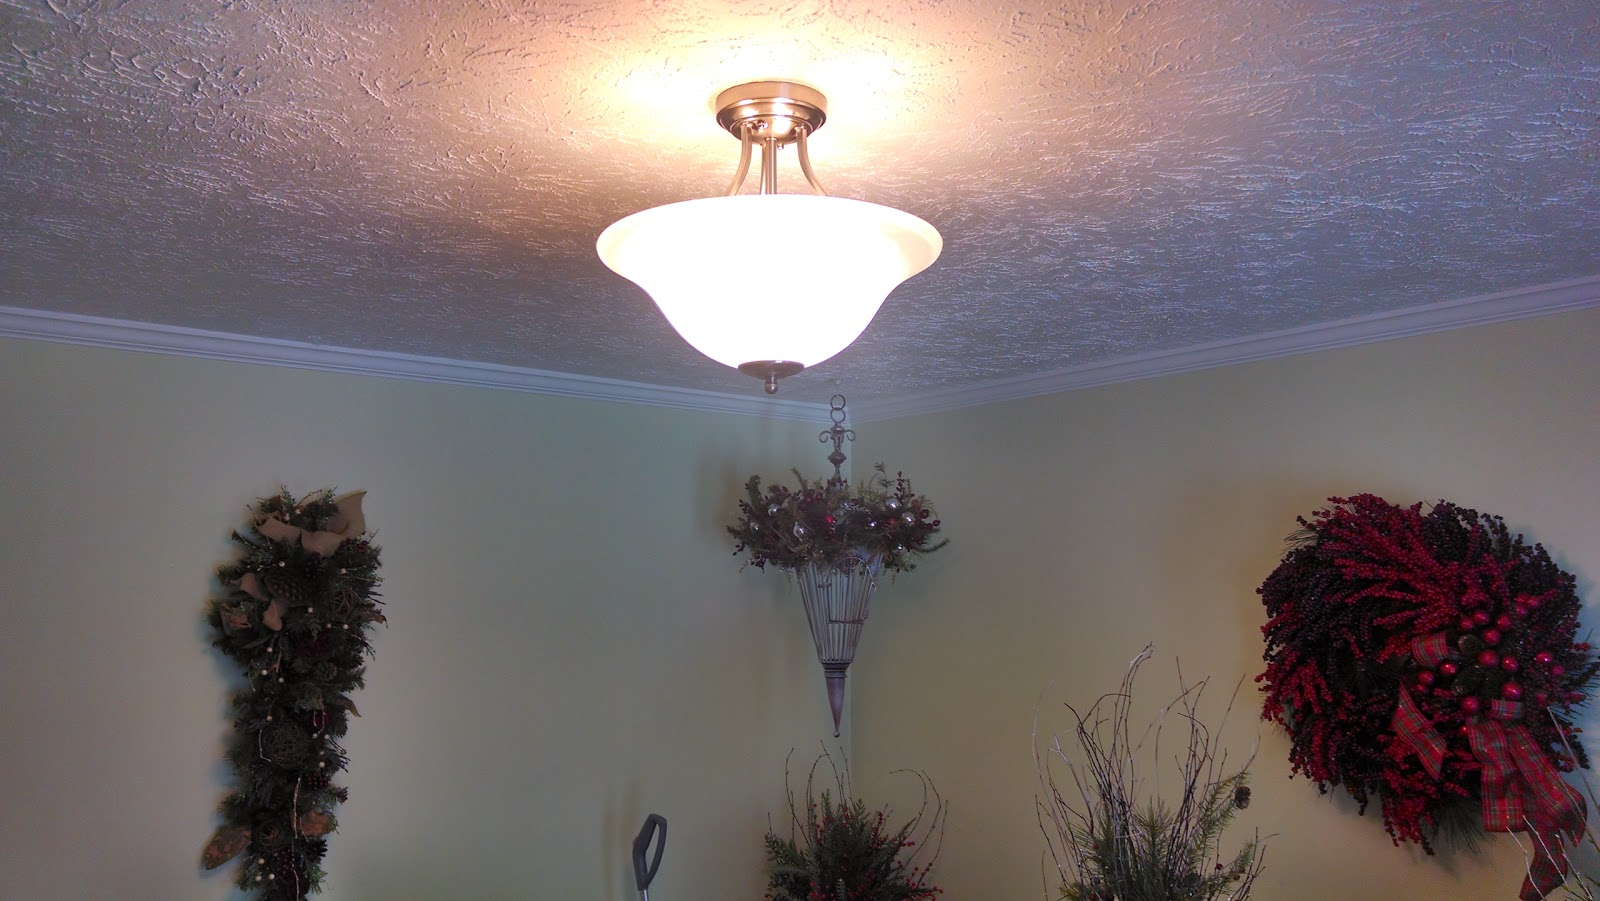 Marks project blog replacing a ceiling fan with a light fixture replacing a ceiling fan with a light fixture arubaitofo Image collections